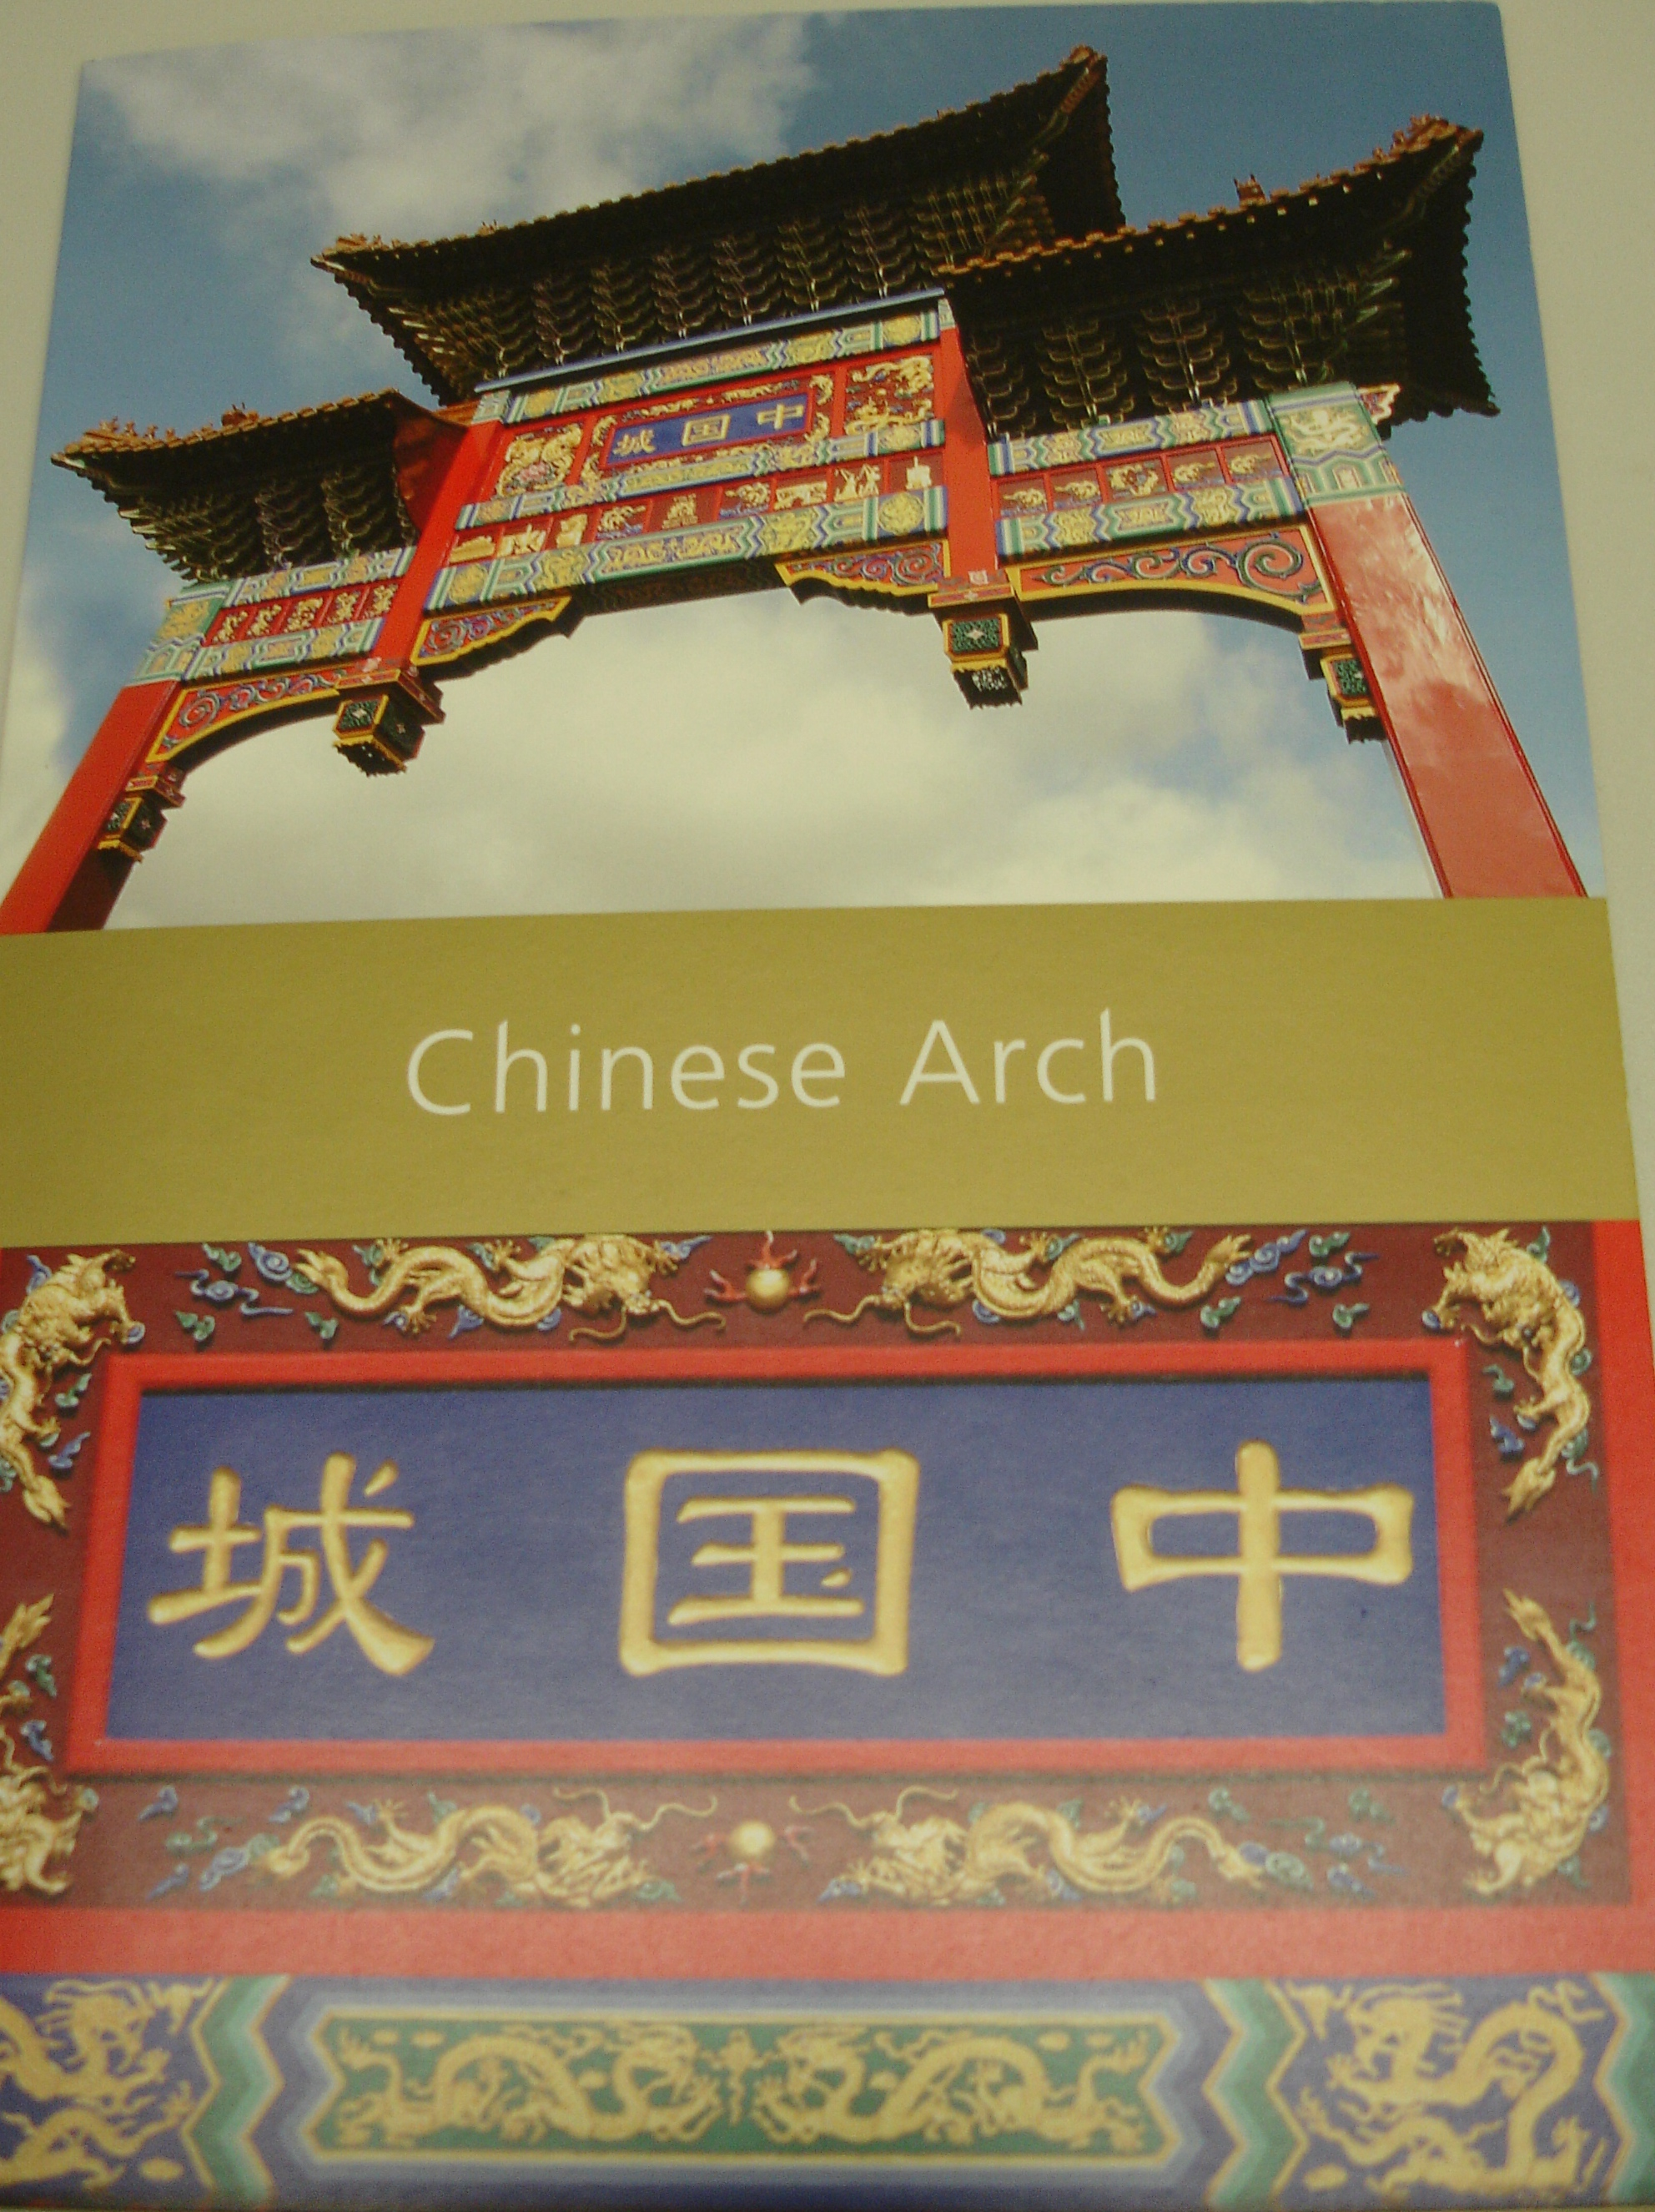 Chinese Arch in Newcastle